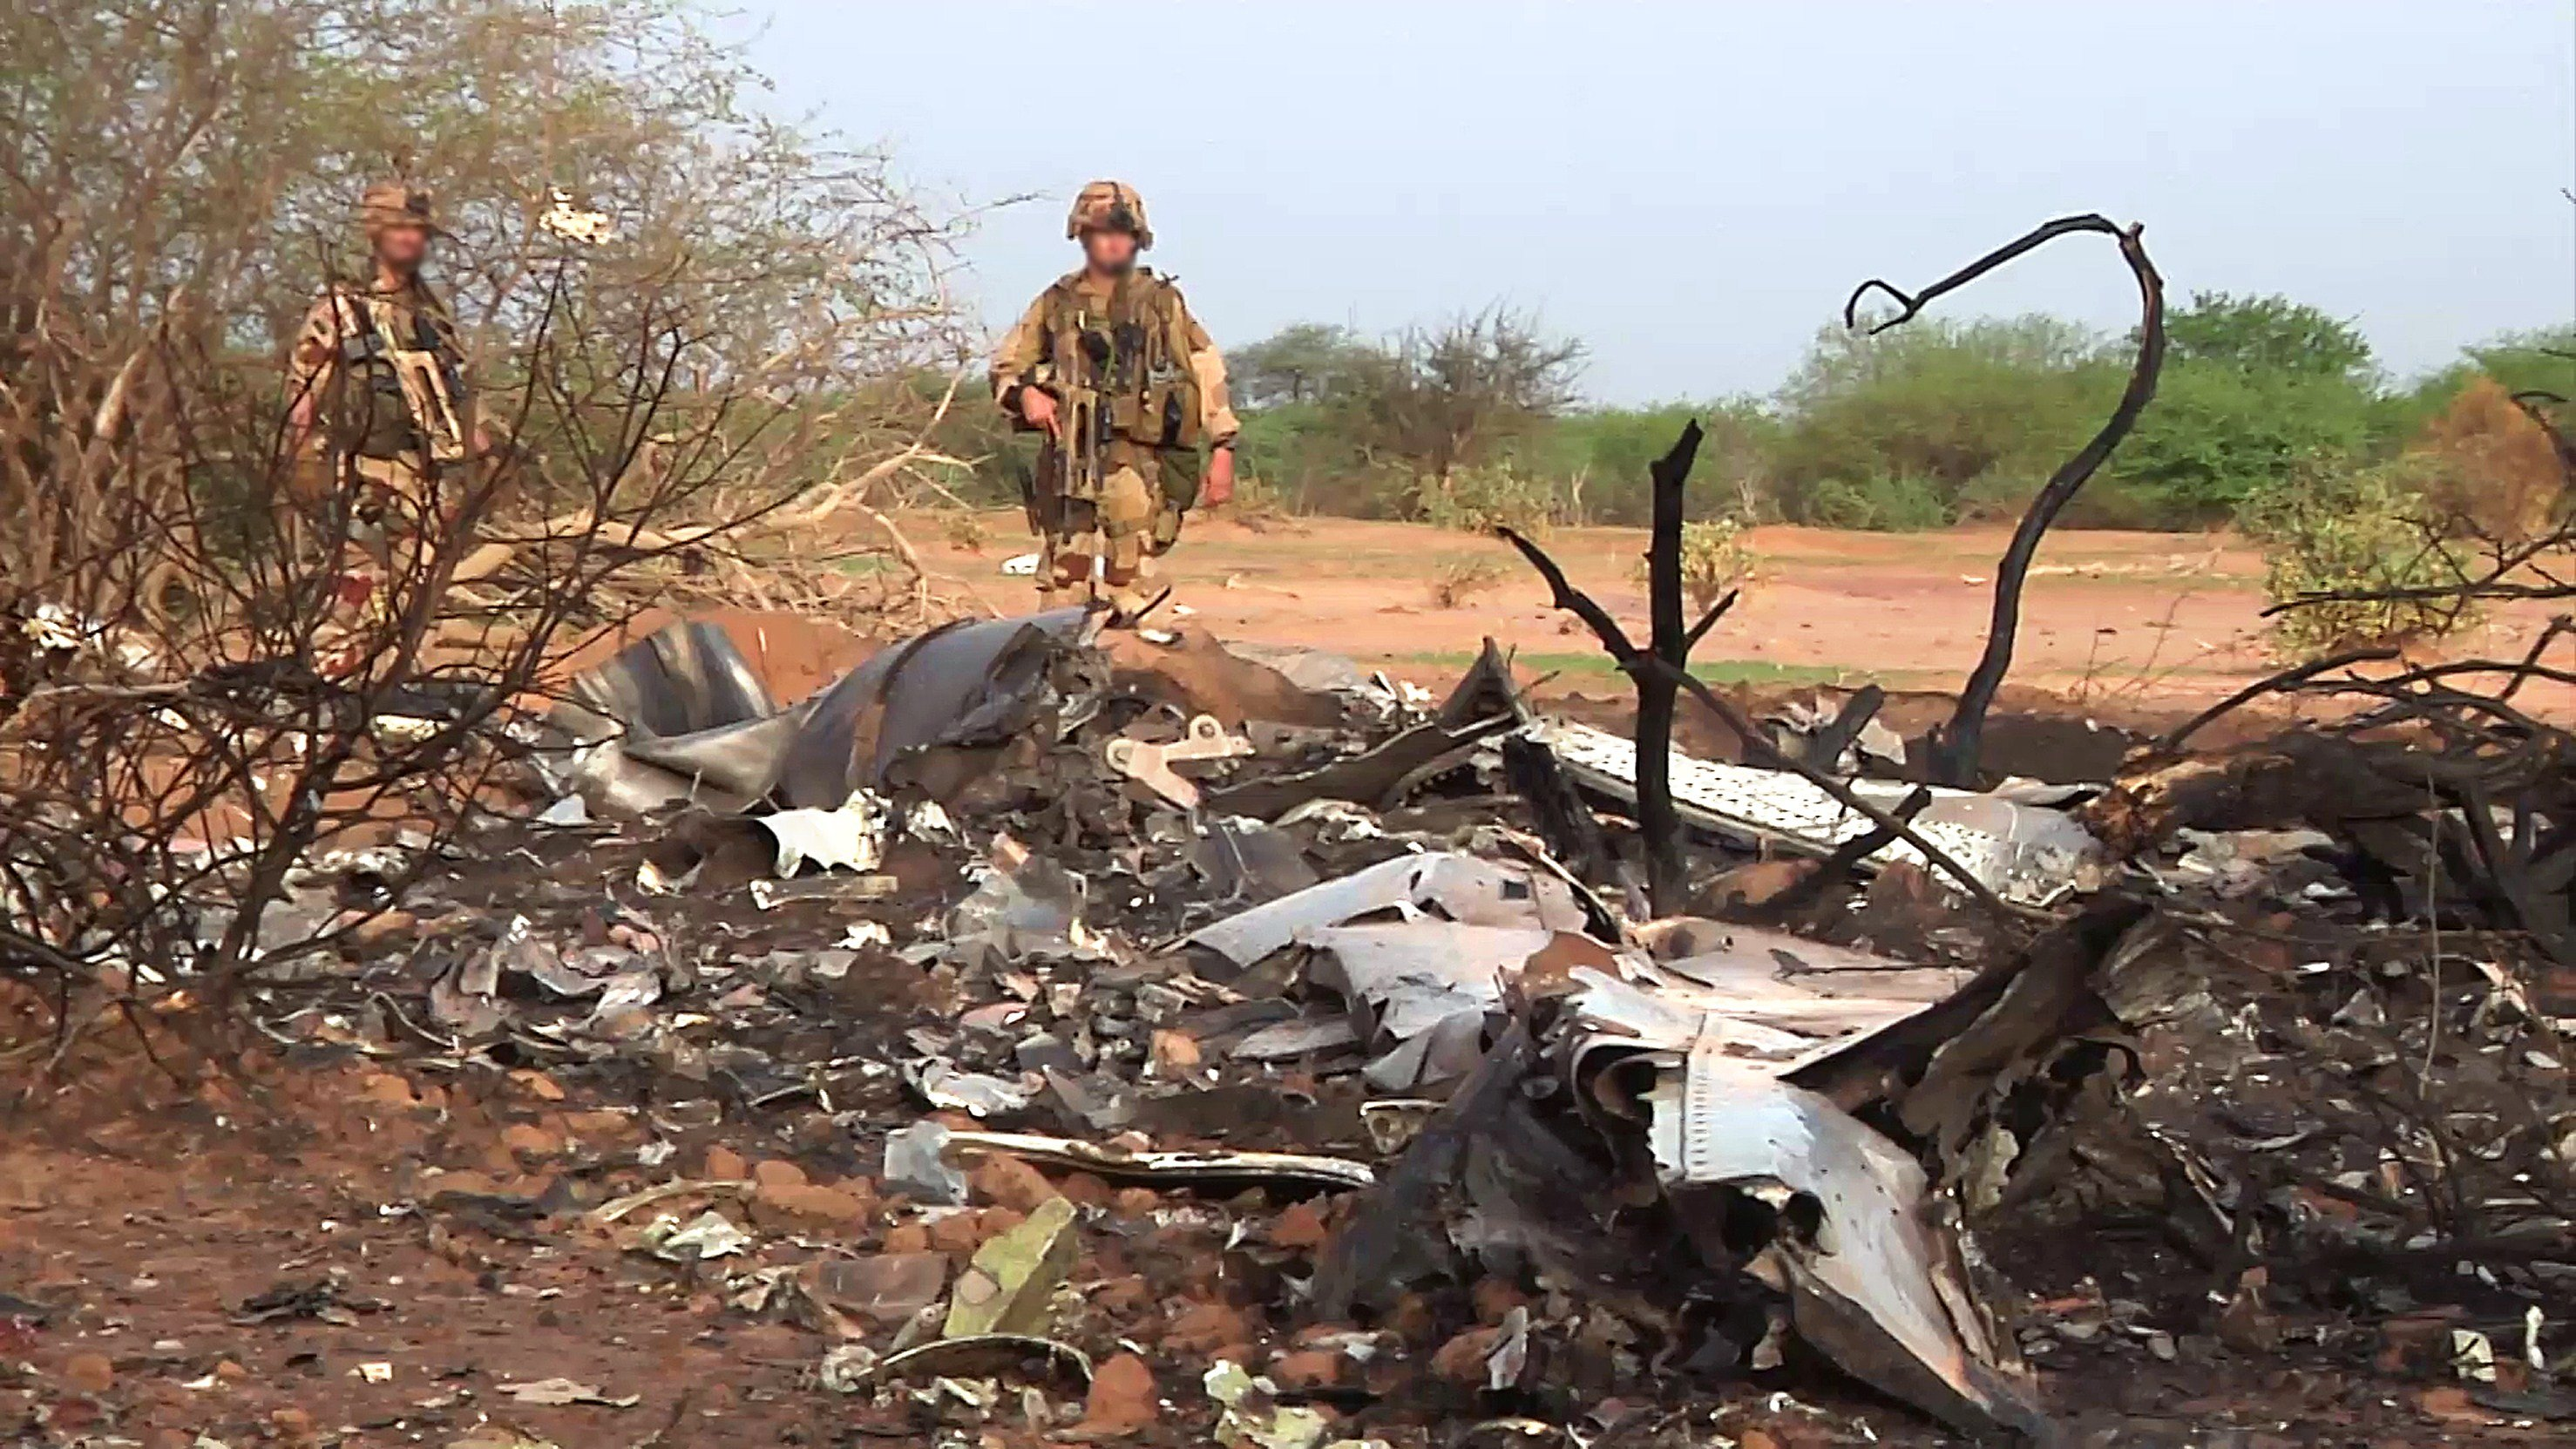 French soldiers stand by the wreckage of the Air Algerie flight AH5017 which crashed in Mali's Gossi region, west of Gao, on July 24, 2014.